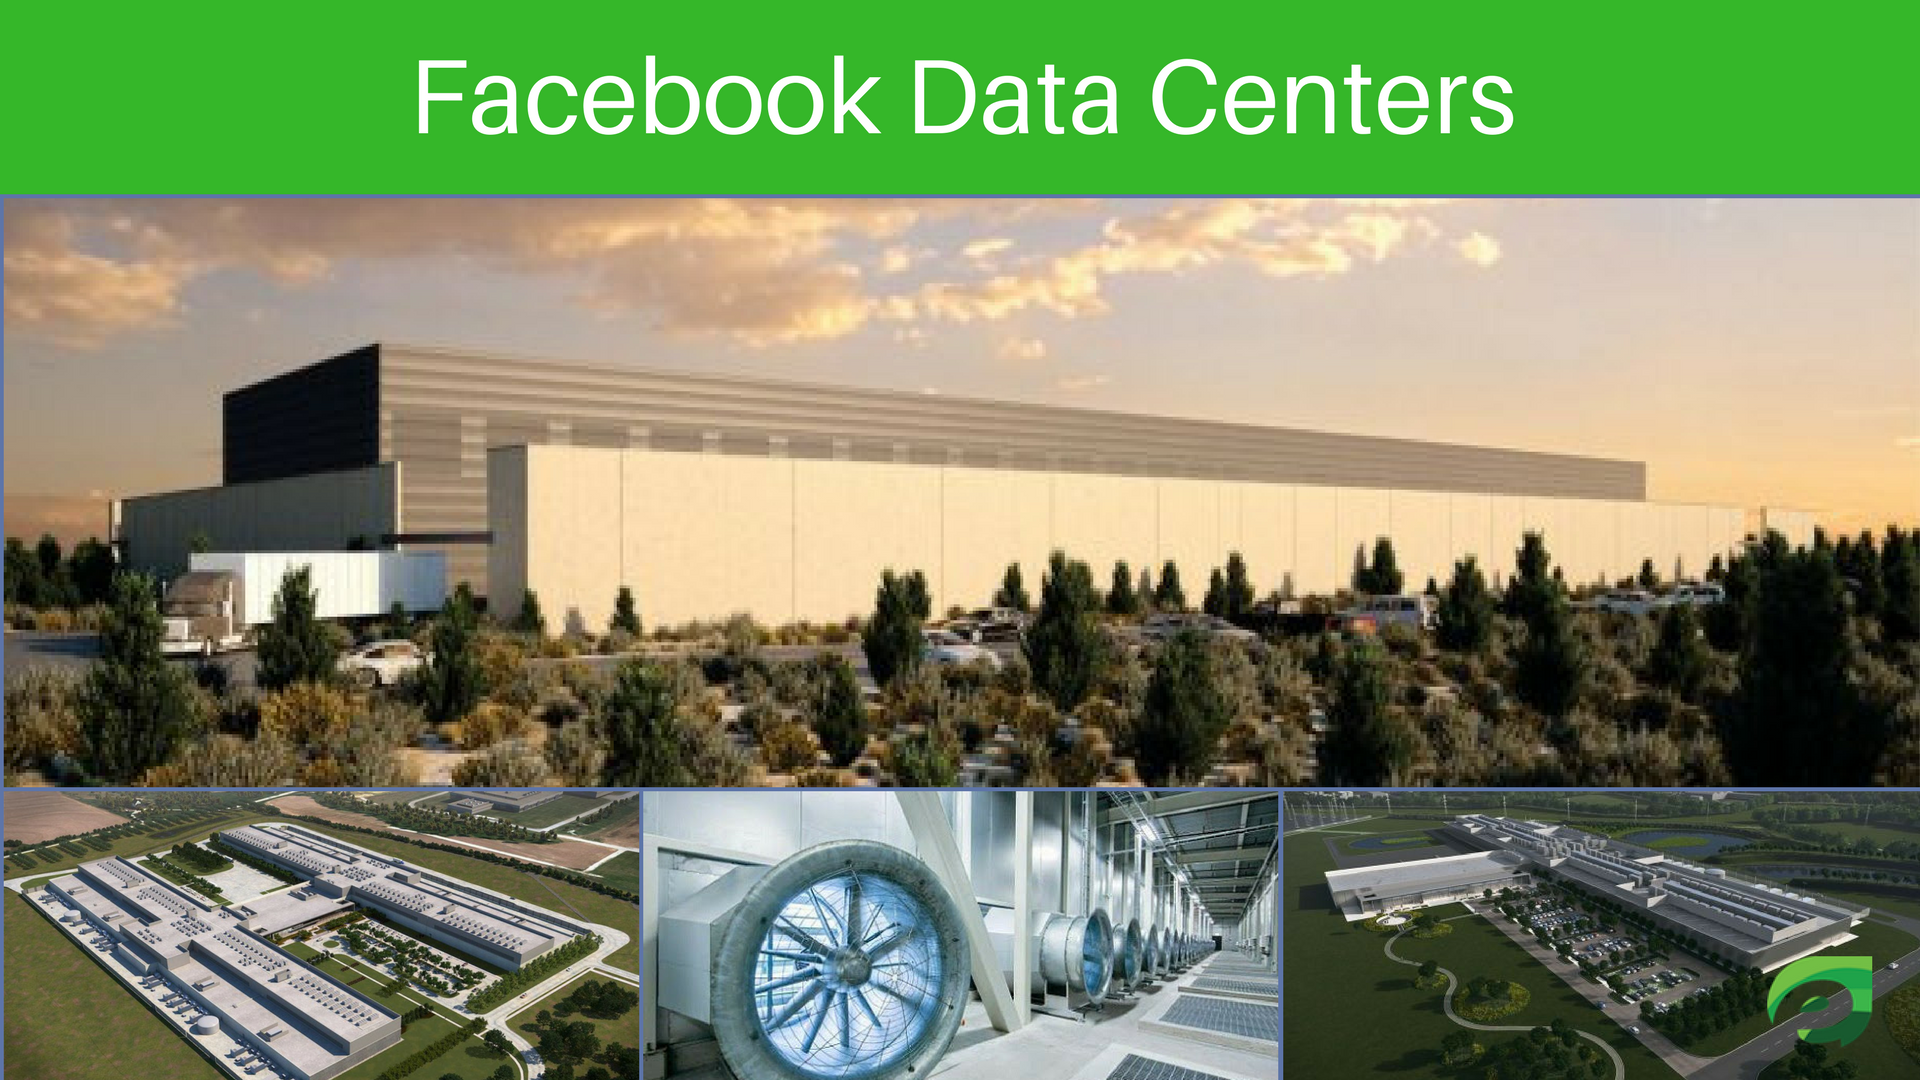 Facebook Data Centers - How Facebook Works